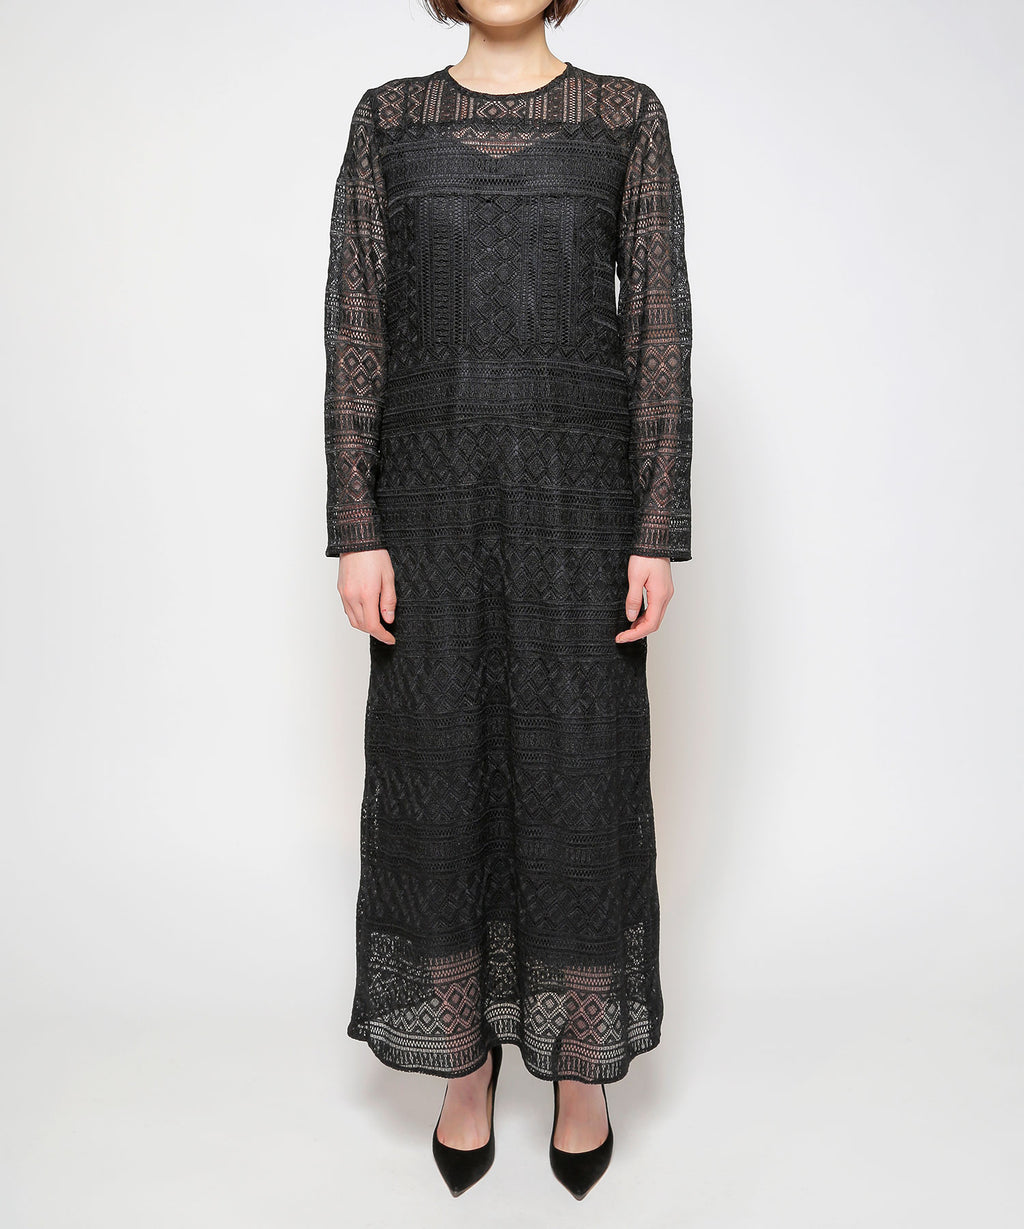 Vrou lace long dress